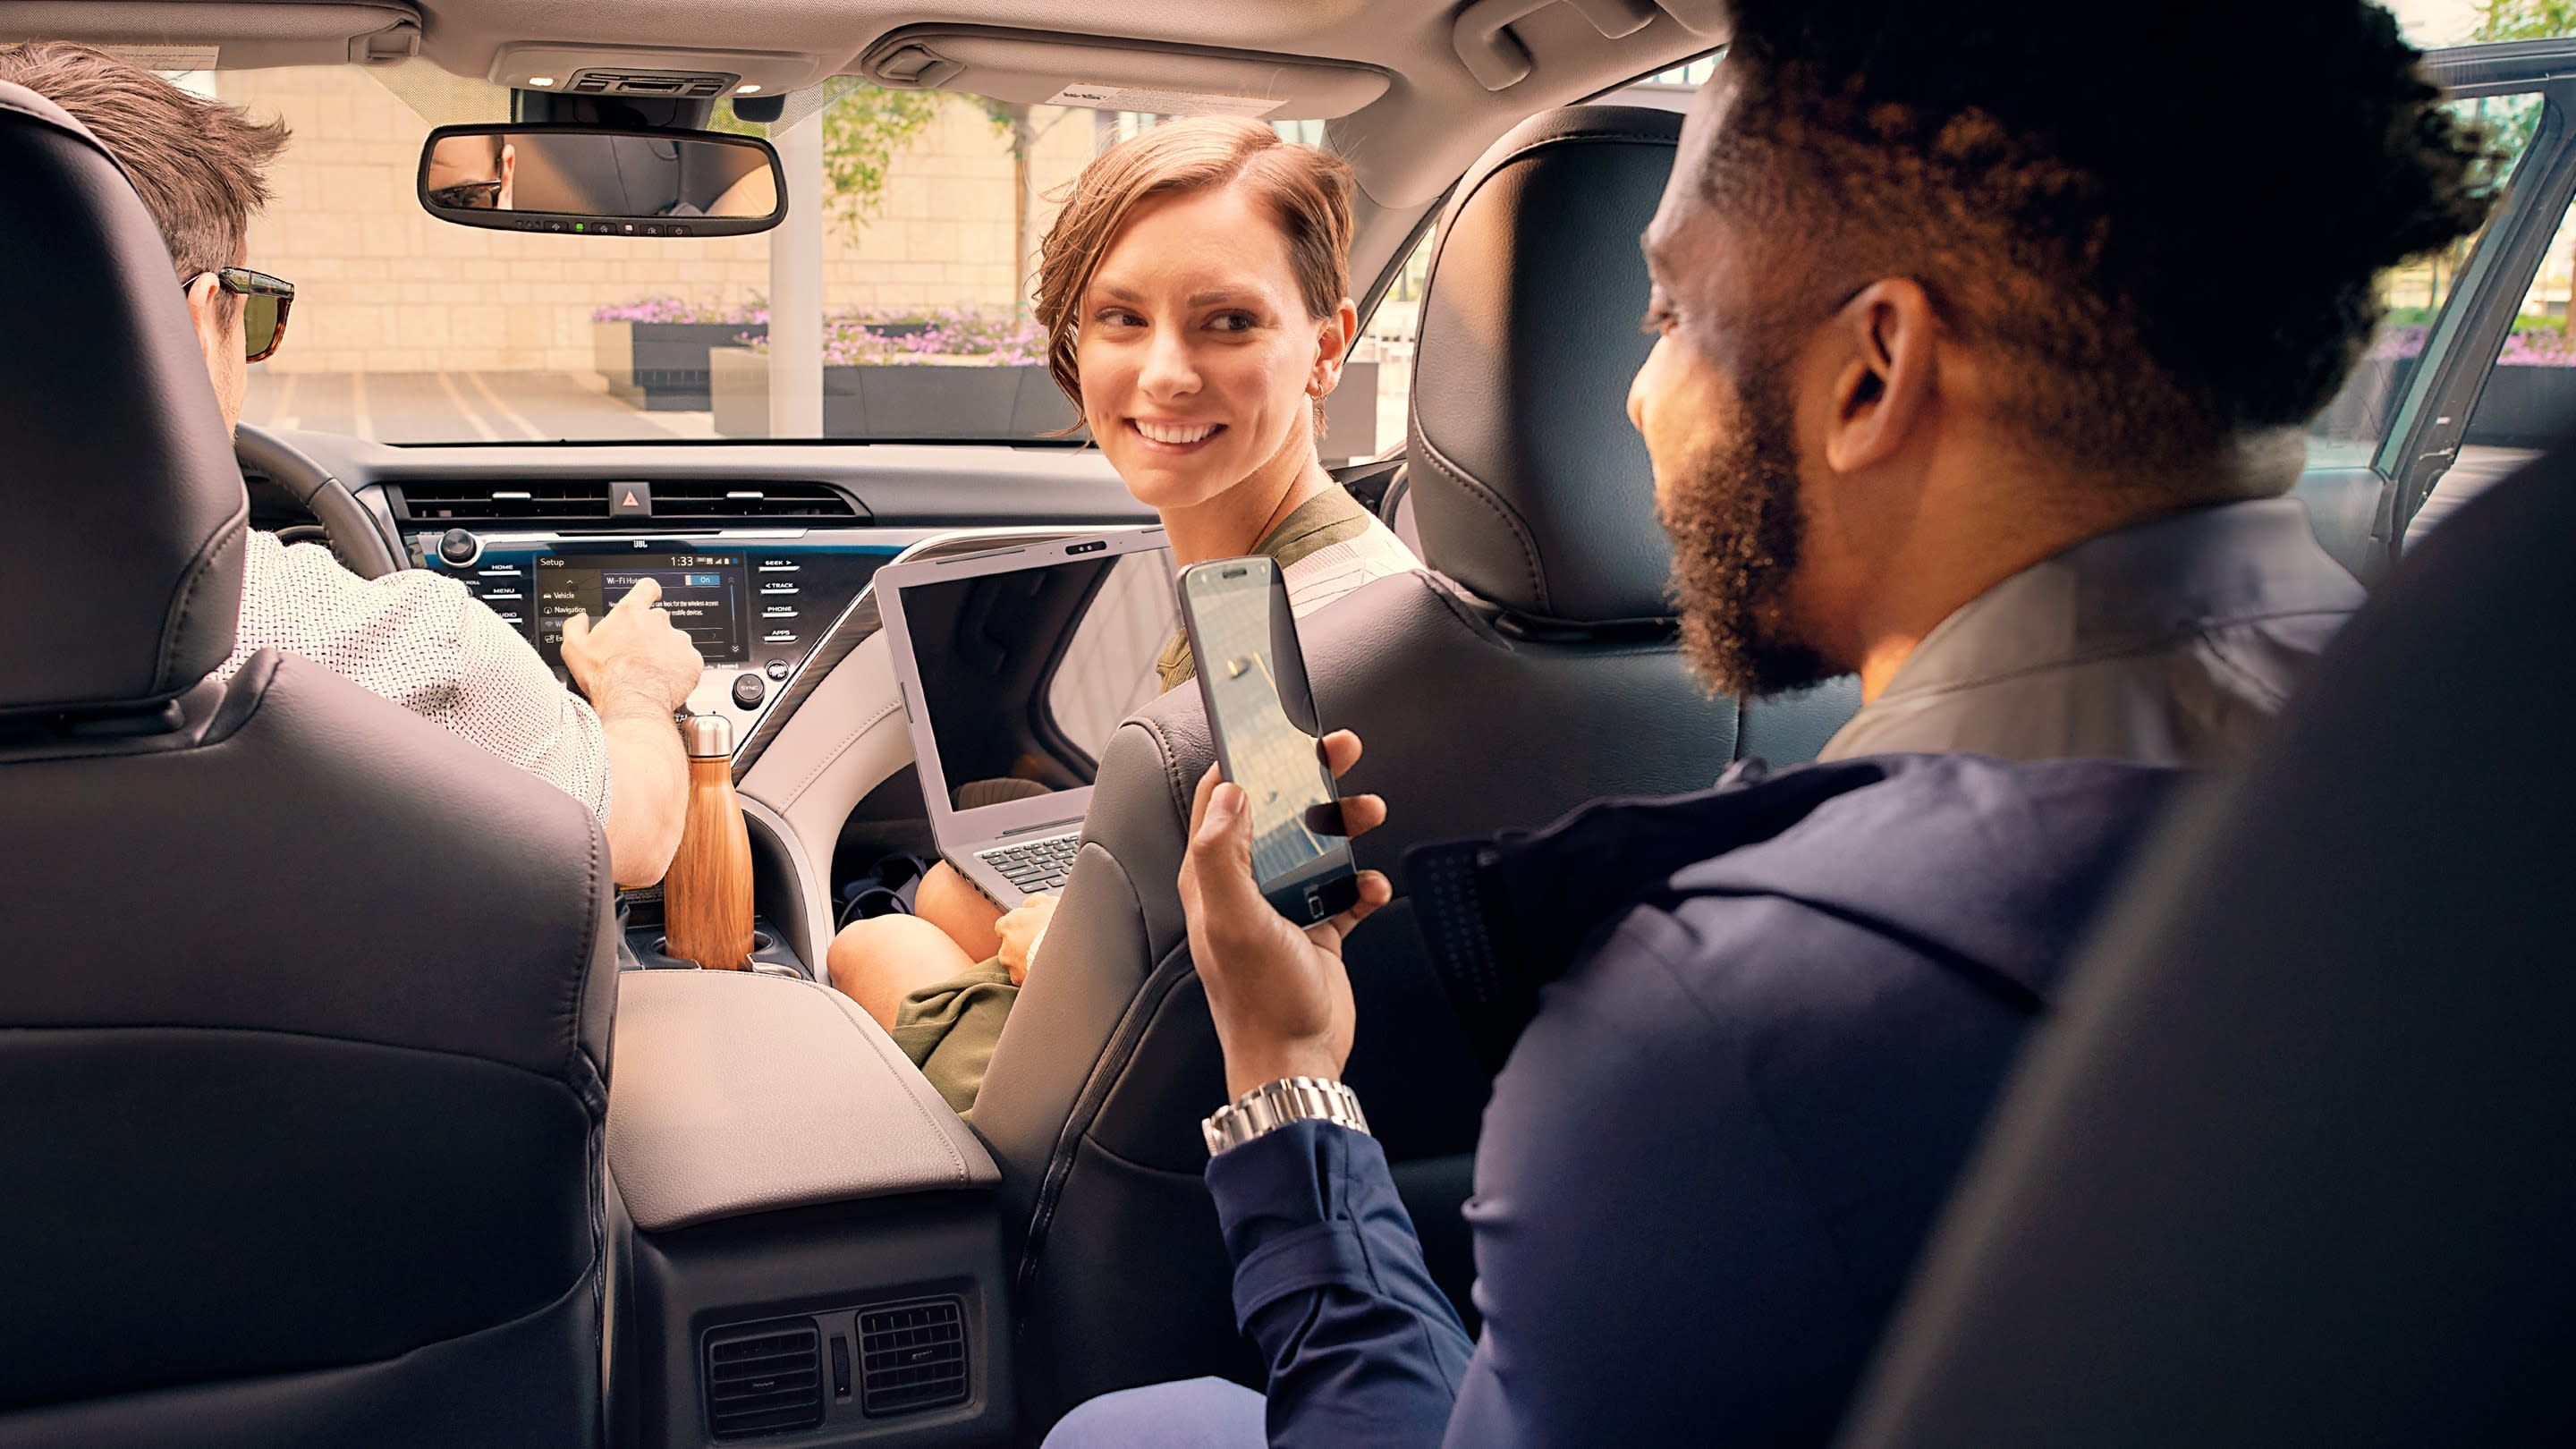 Bring Your Friends Along for the Ride in the 2020 Camry!